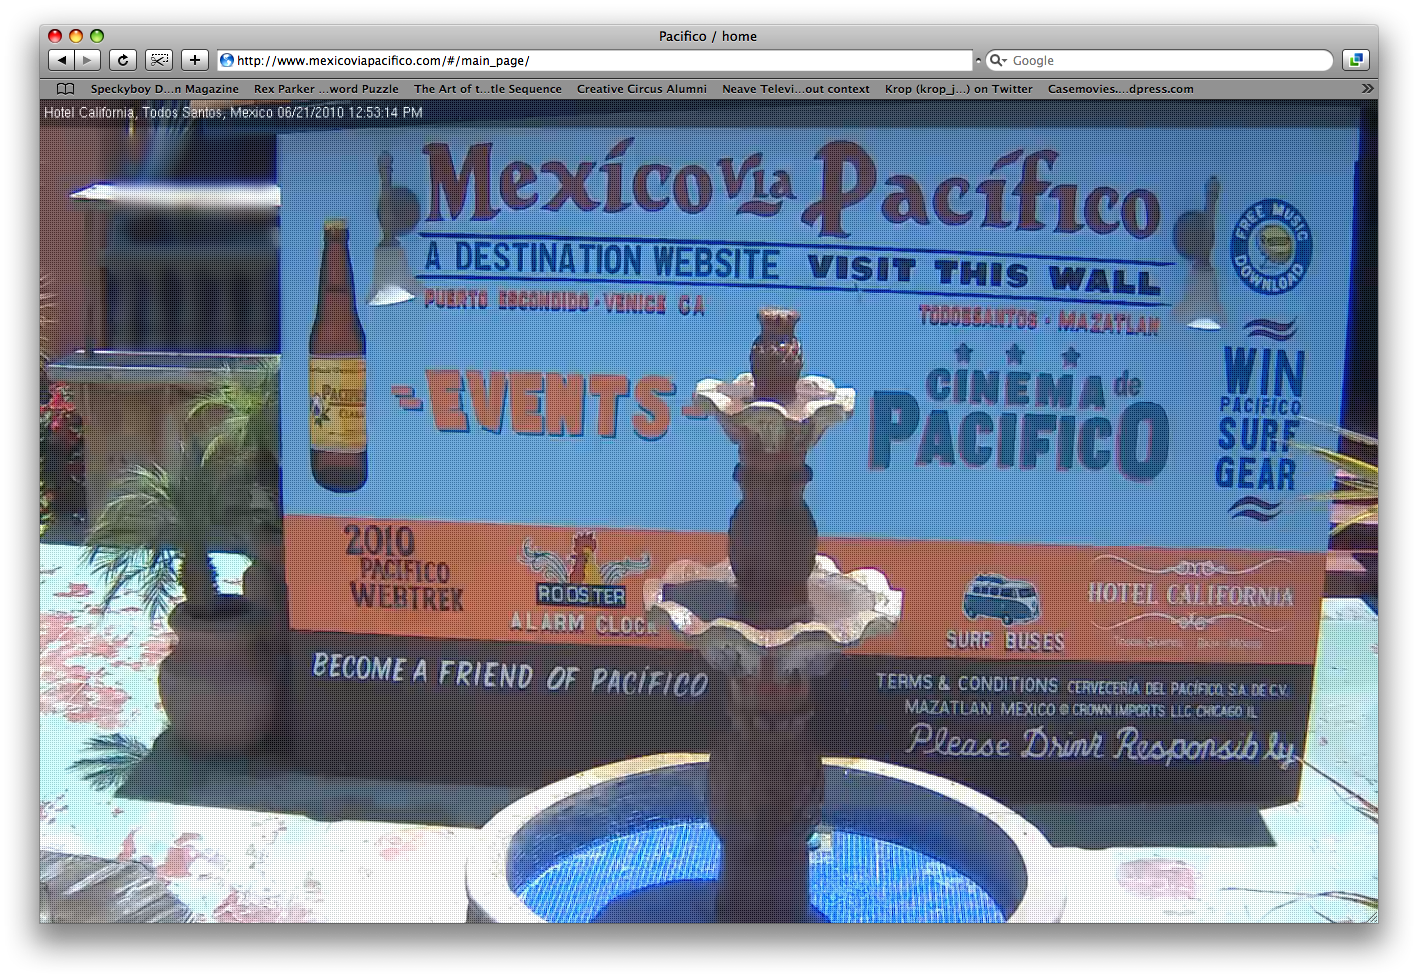 The world's first website where you could visit the homepage online and in real life.   Mexico via Pacifico destination website home page. Each page was an actual location. Using webcams and overlaying the UX, Each page was a clickable functional page but also a place you could actually visit.